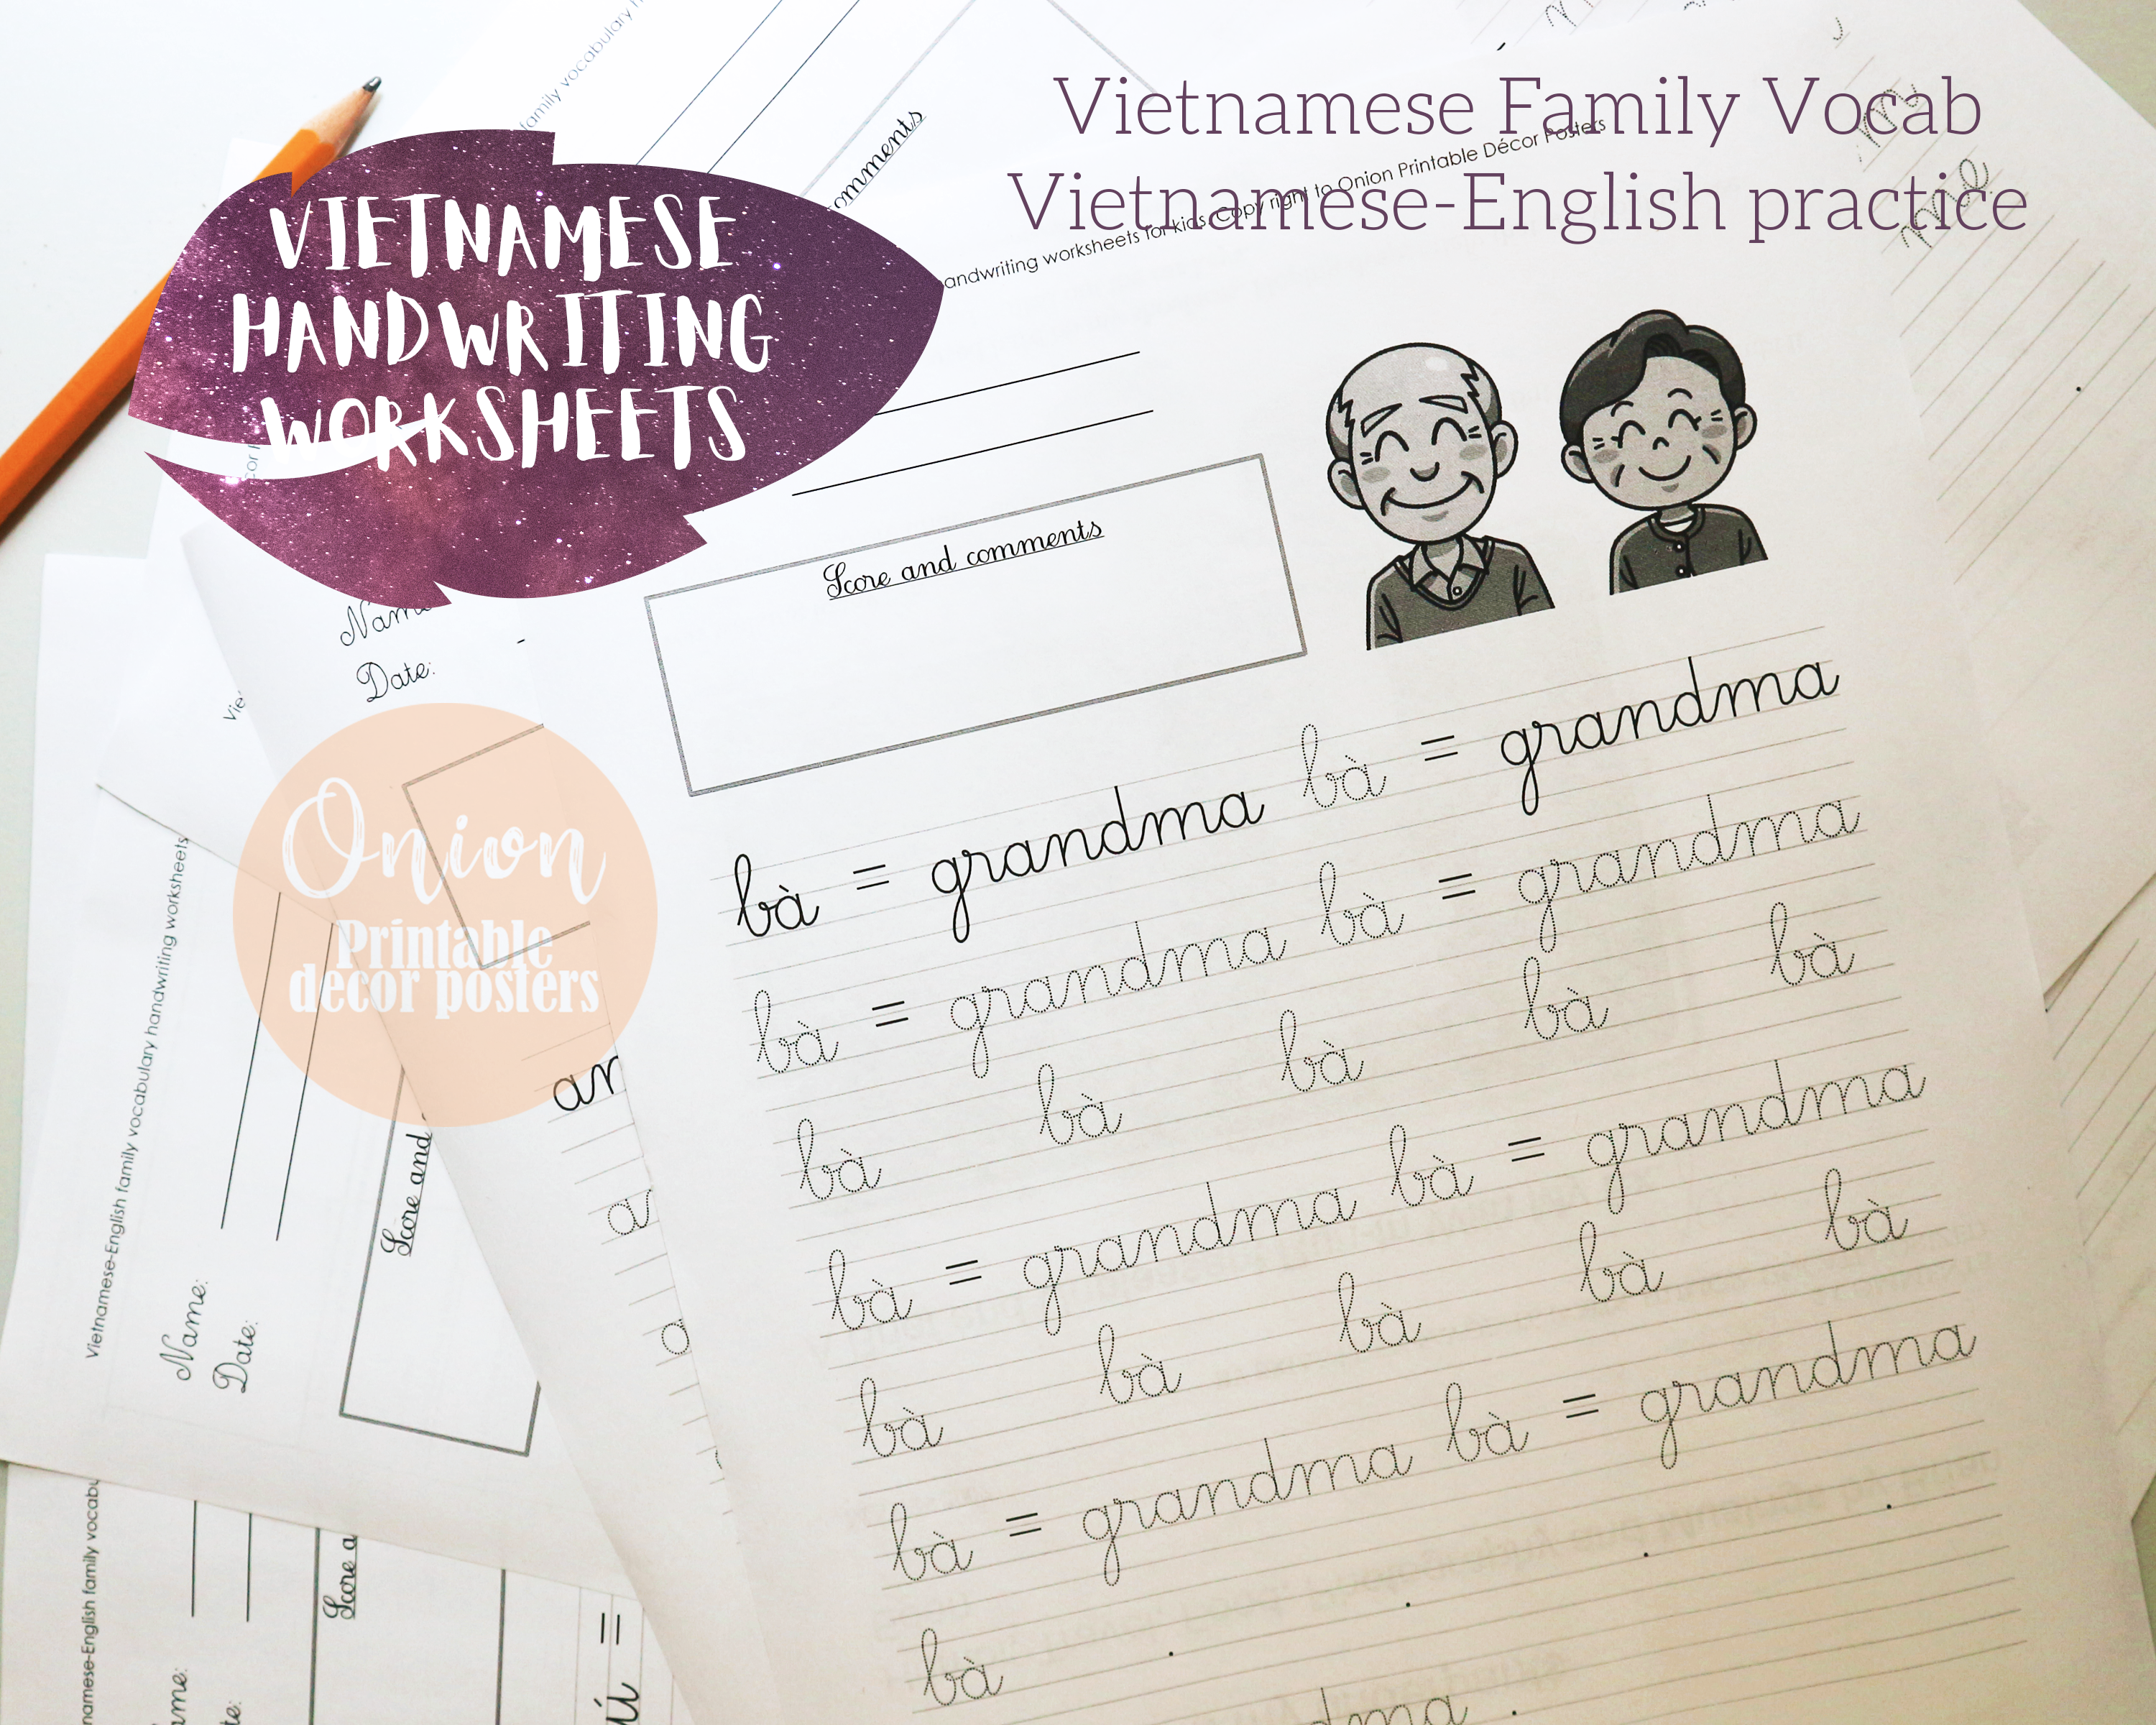 Vietnamese Handwriting Worksheets Vietnamese Family Vocab